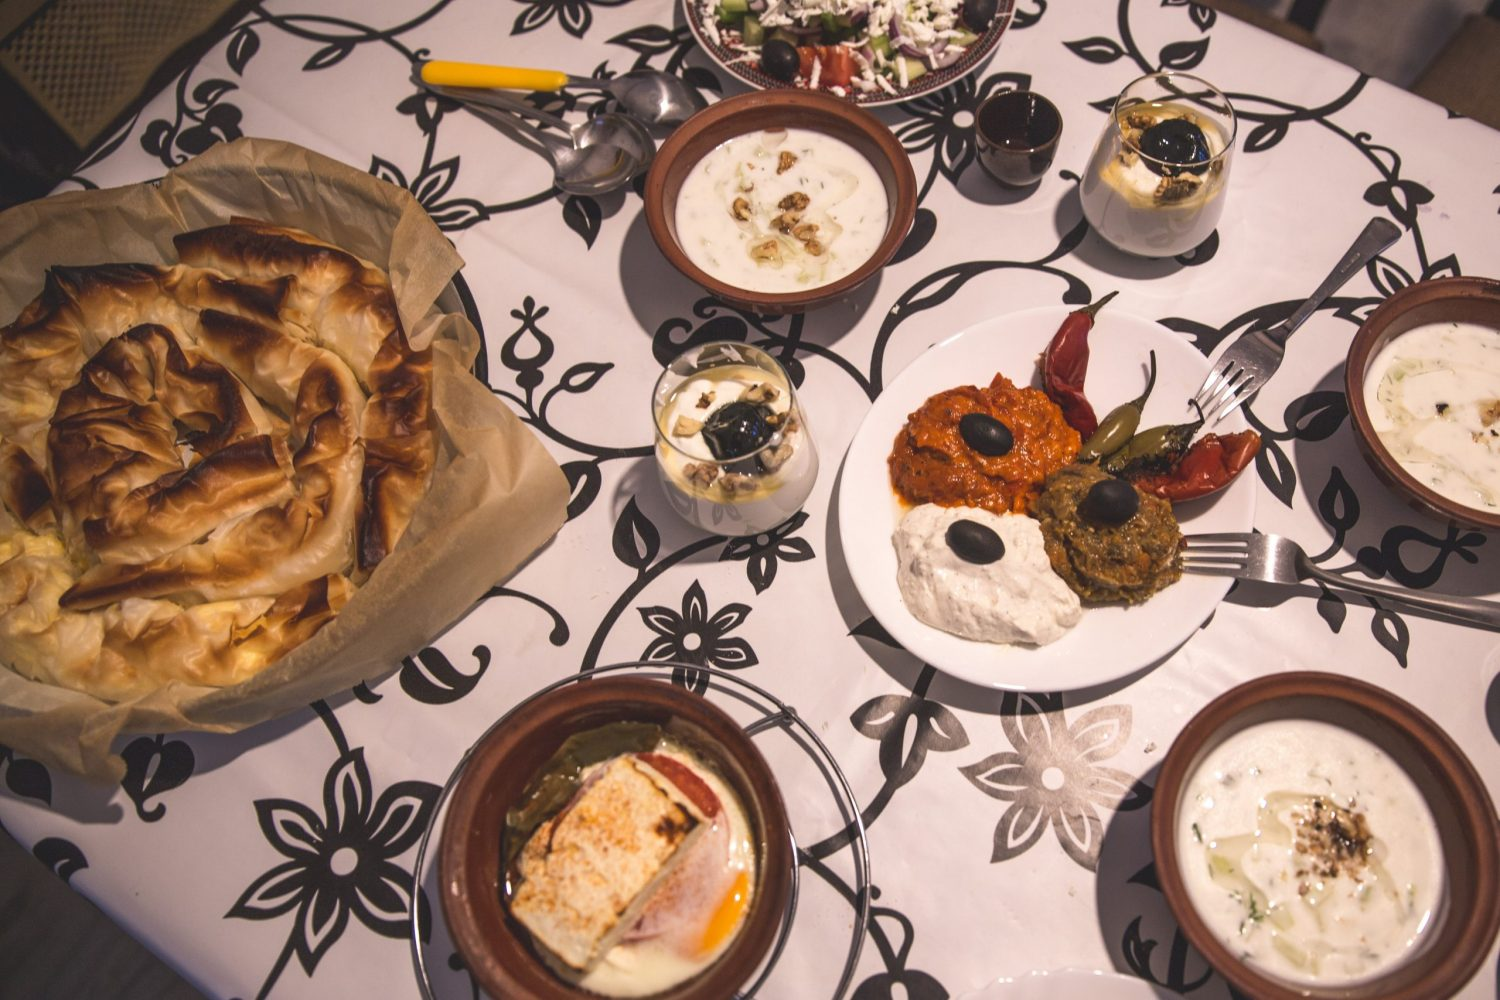 Traditional Bulgarian food, including banitsa, tarator, shopski cheese, and shopska salad!